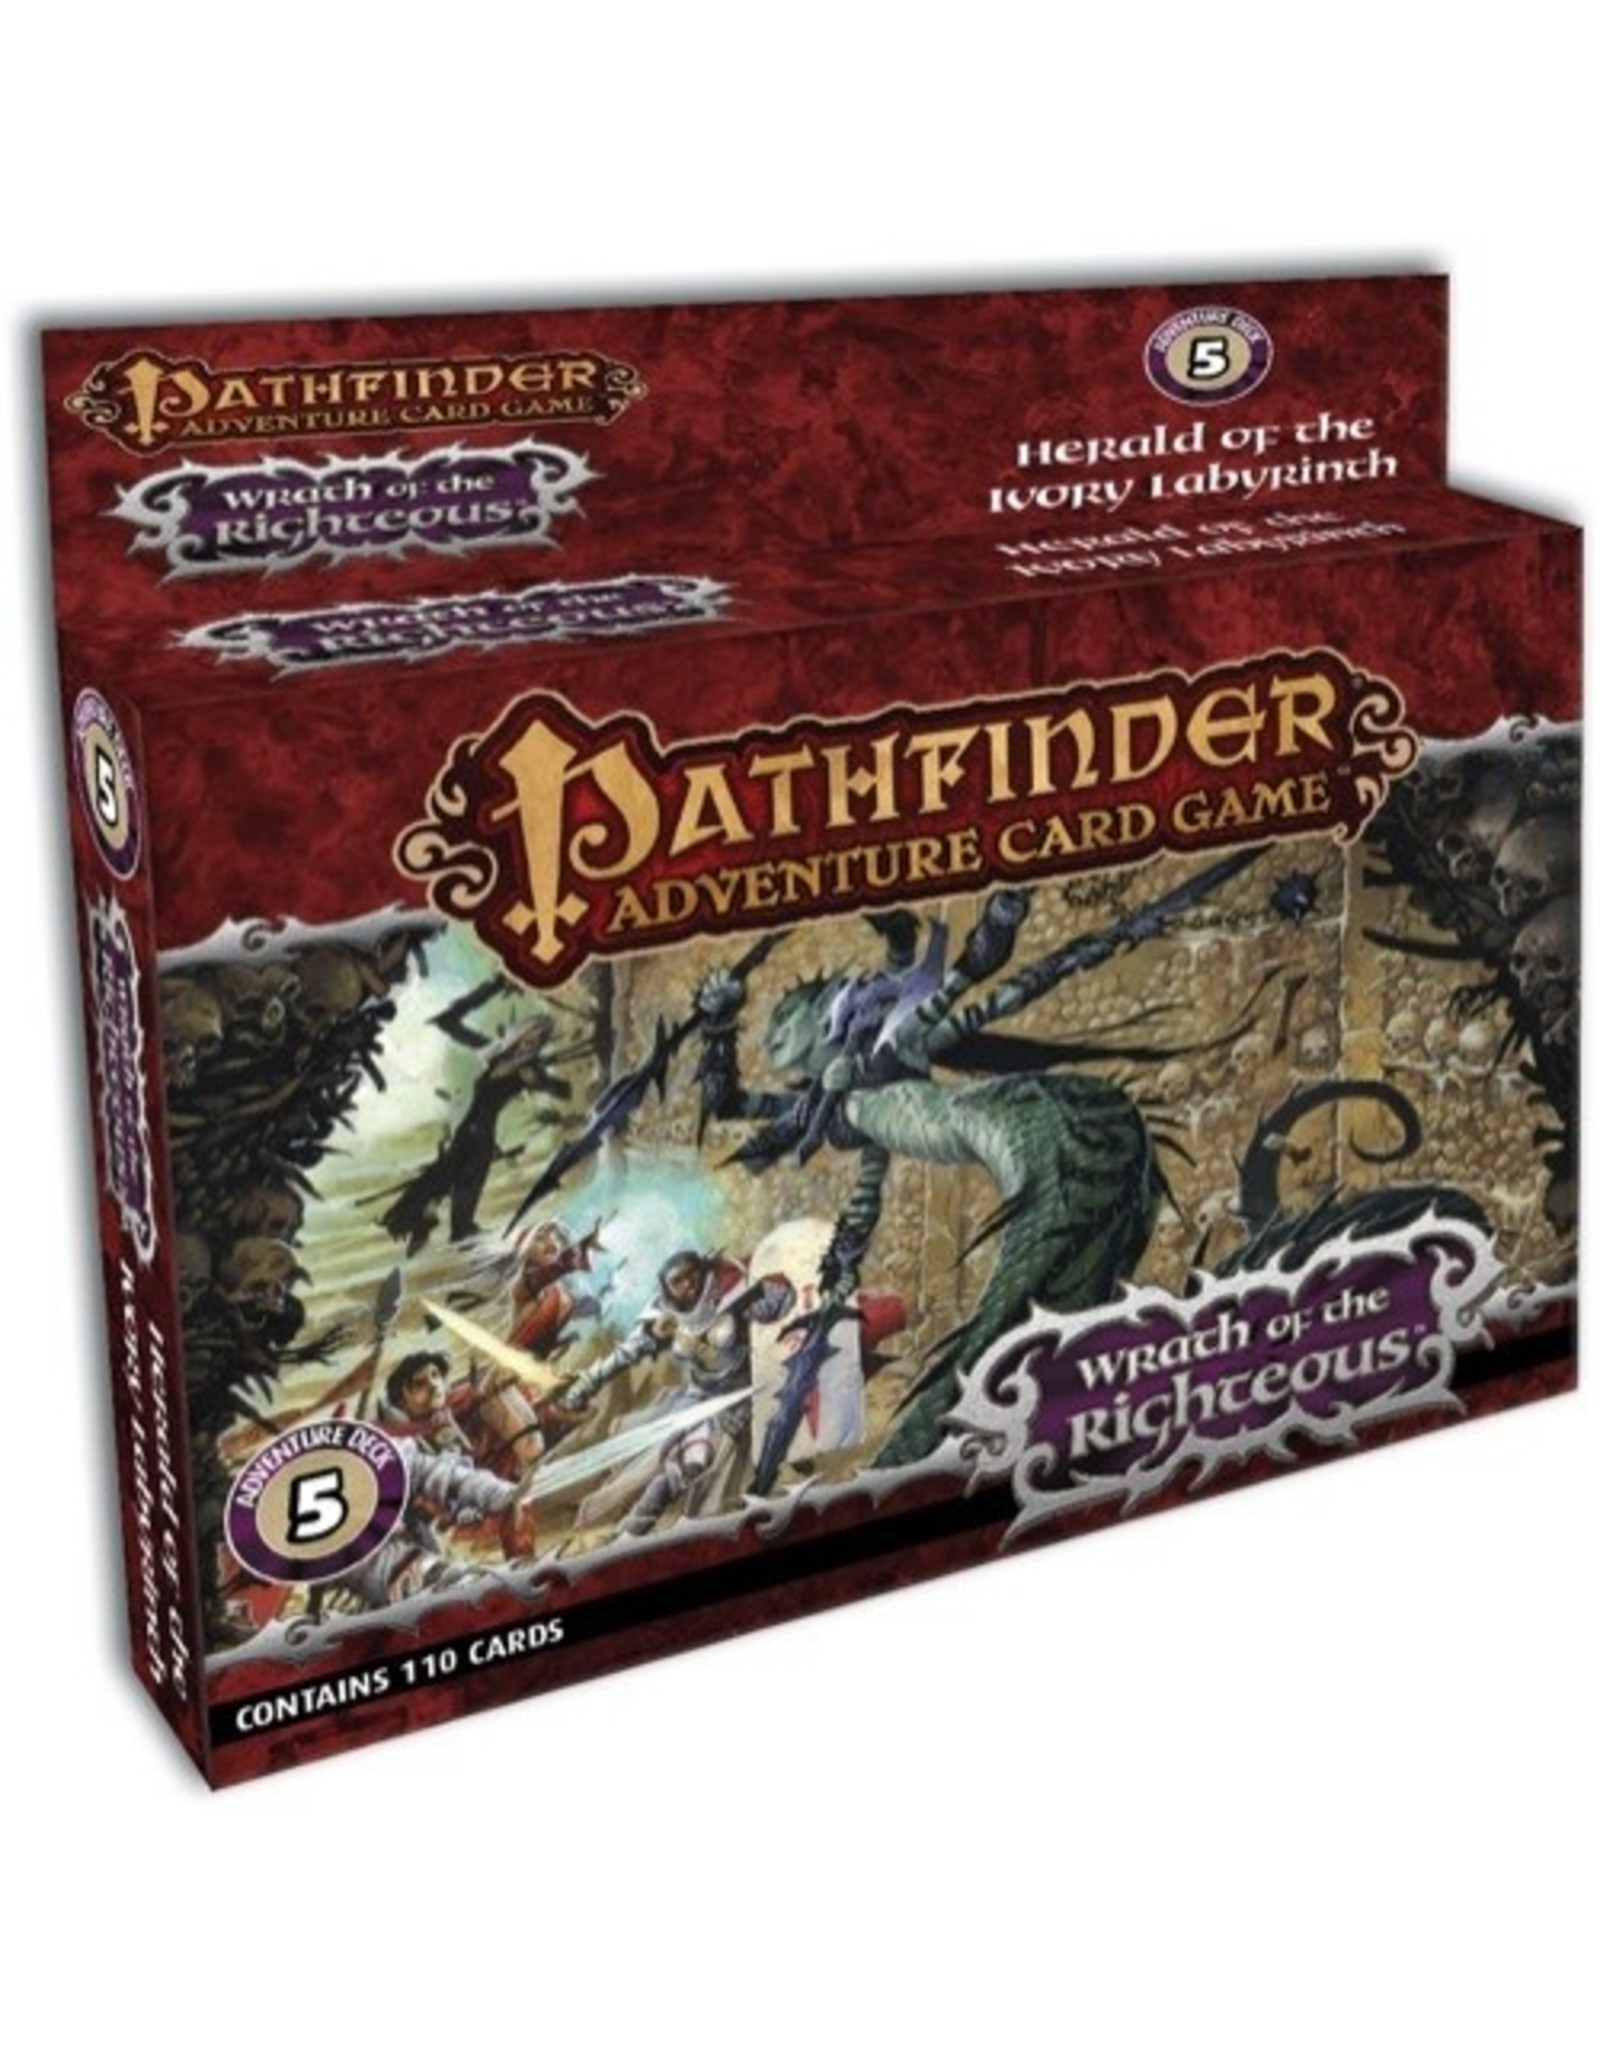 Pathfinder Adventure Card Game: Wrath of the Righteous Adventure Deck 5 - Herald of the Ivory Labyrinth